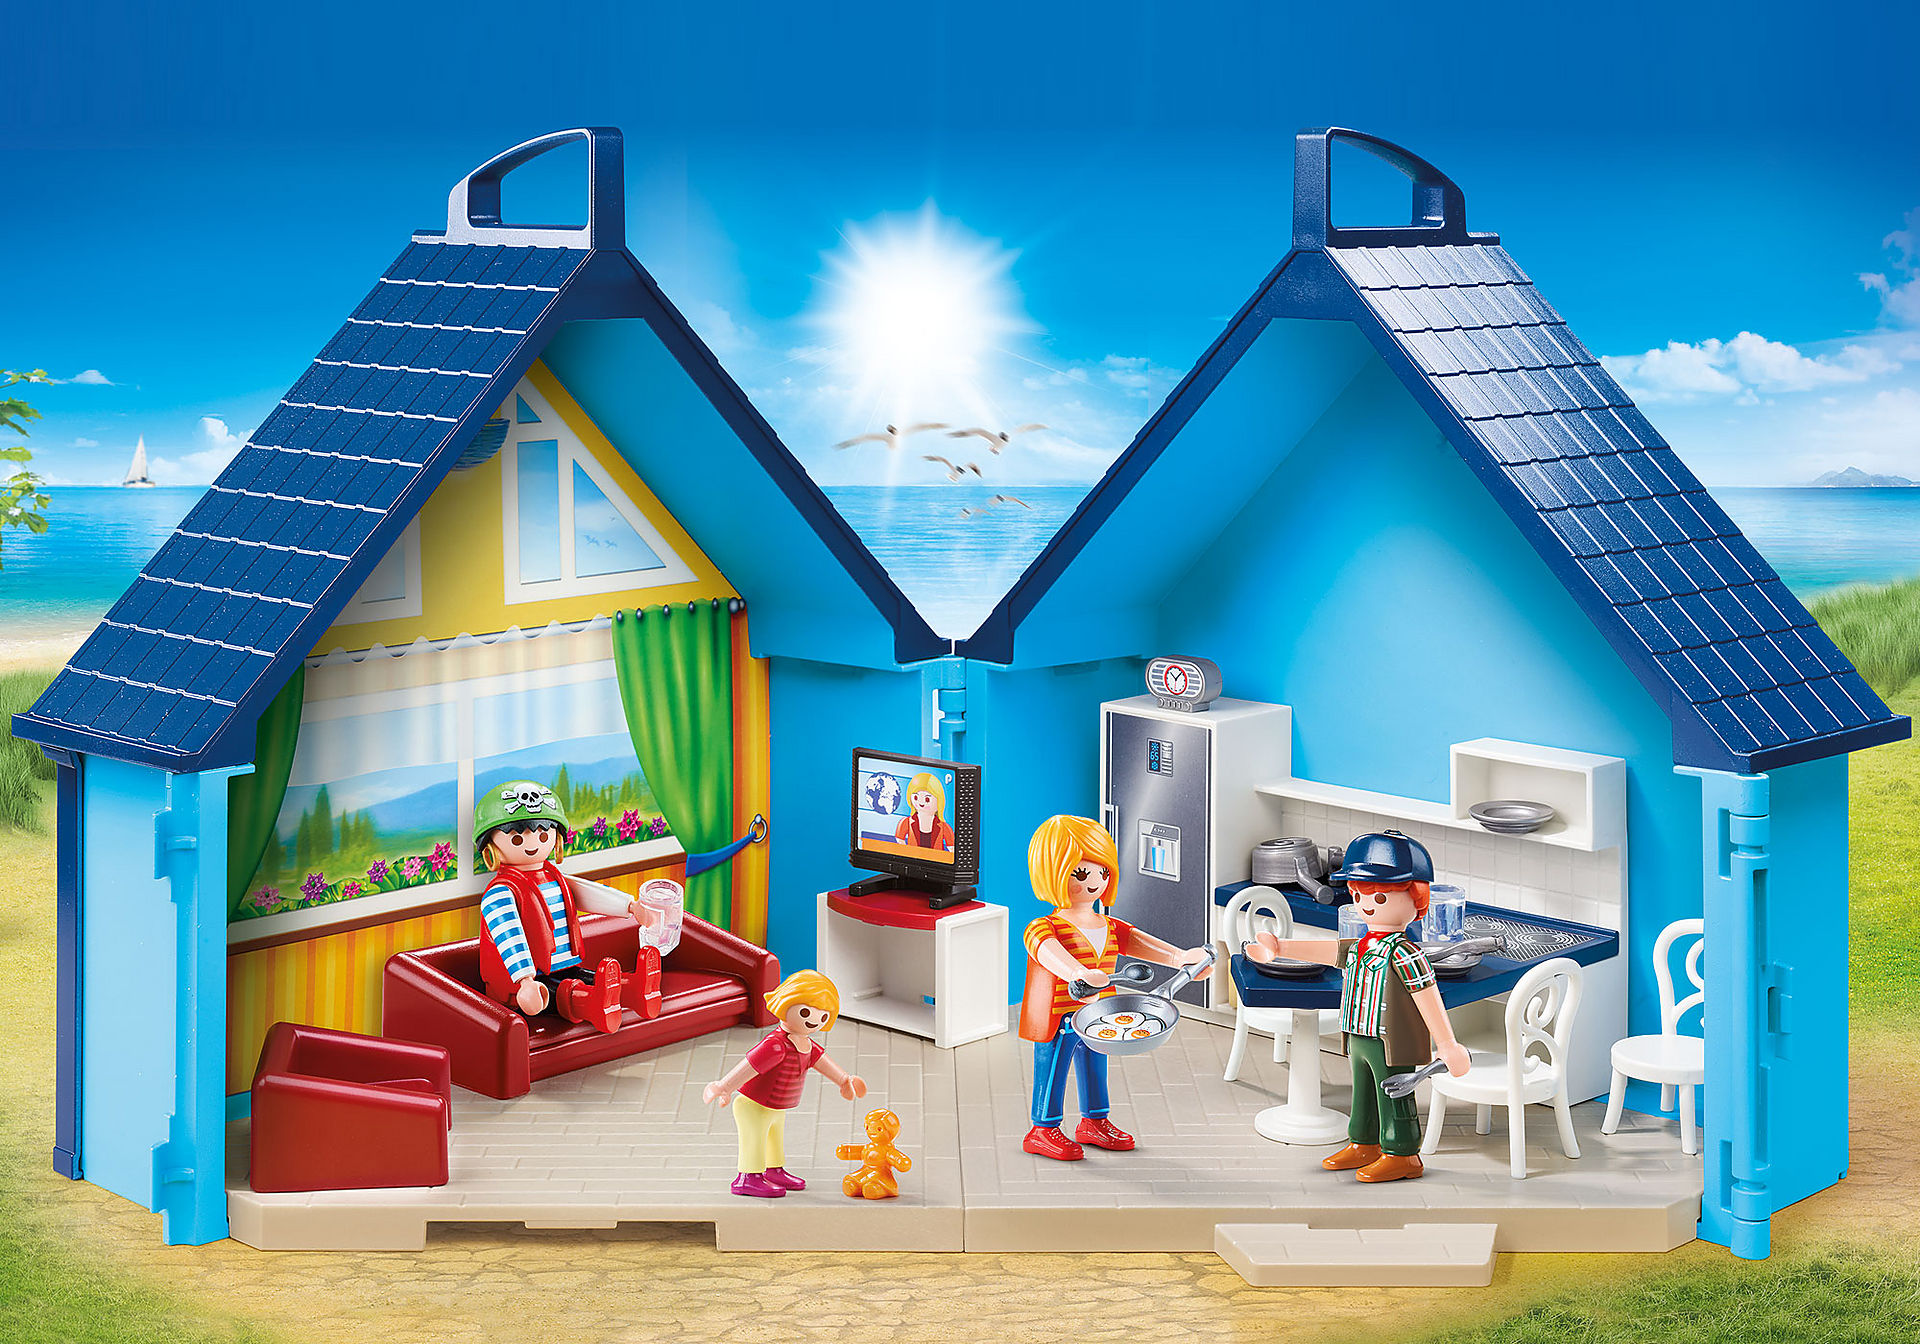 70219 PLAYMOBIL FunPark - Playbox casa delle vacanze zoom image1